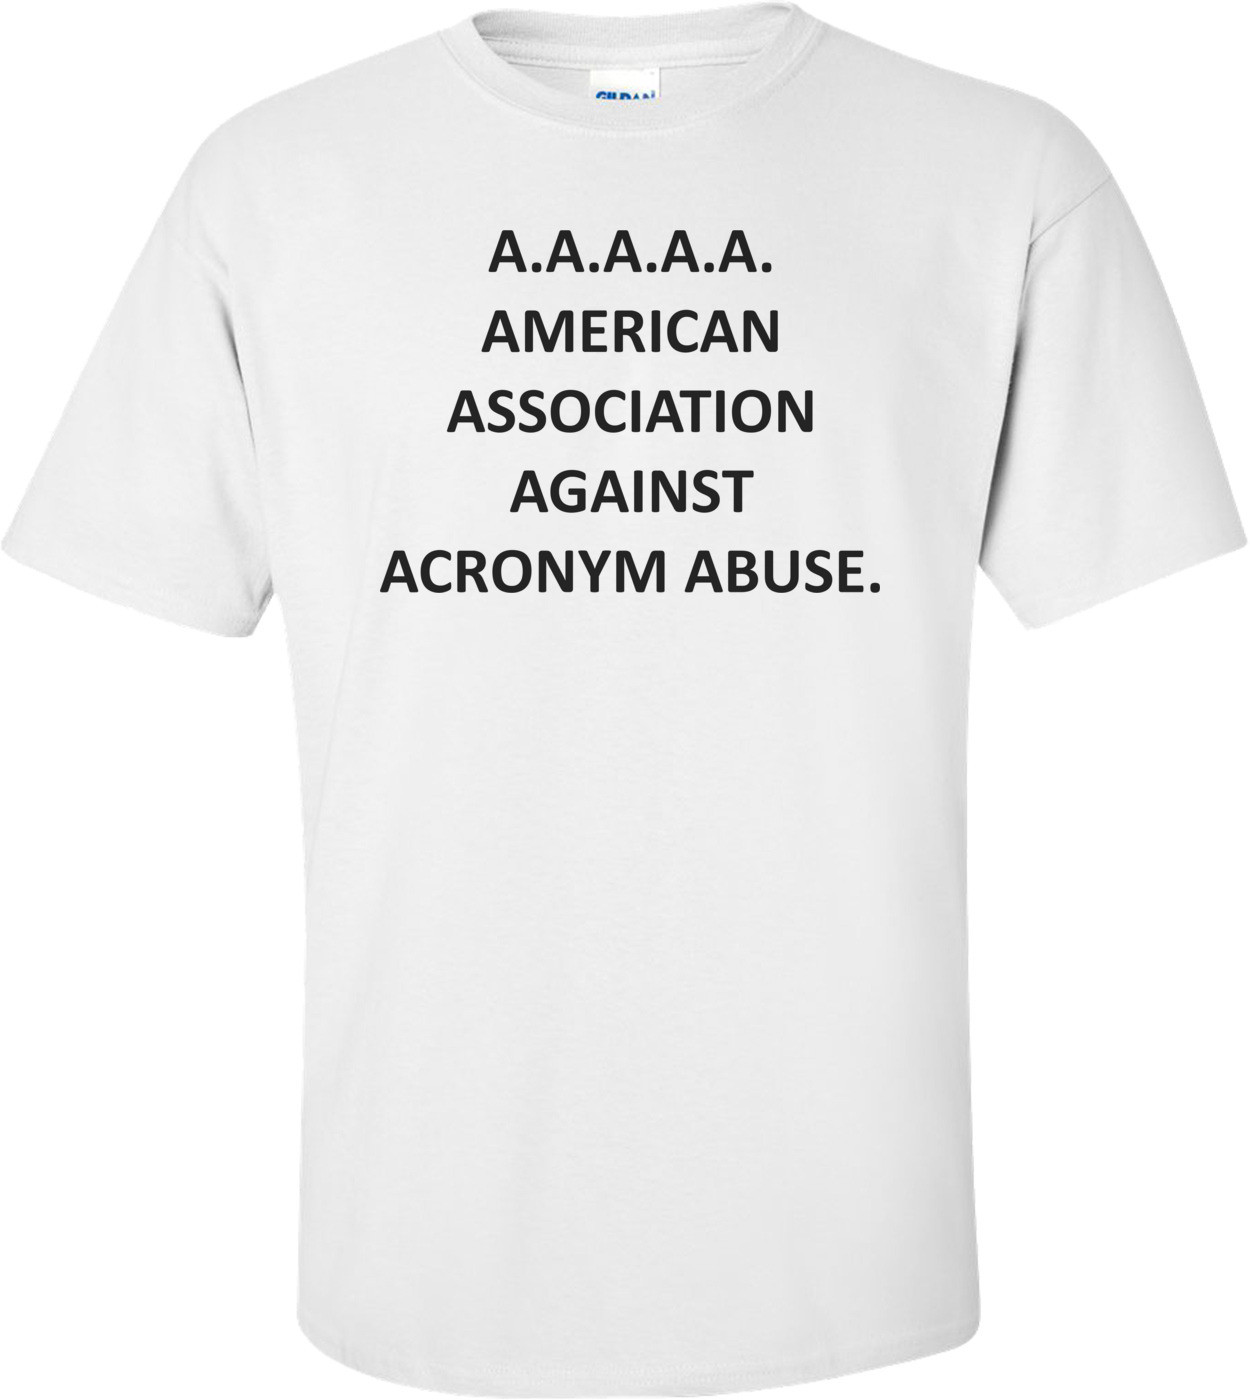 A.A.A.A.A. AMERICAN ASSOCIATION AGAINST ACRONYM ABUSE. Shirt